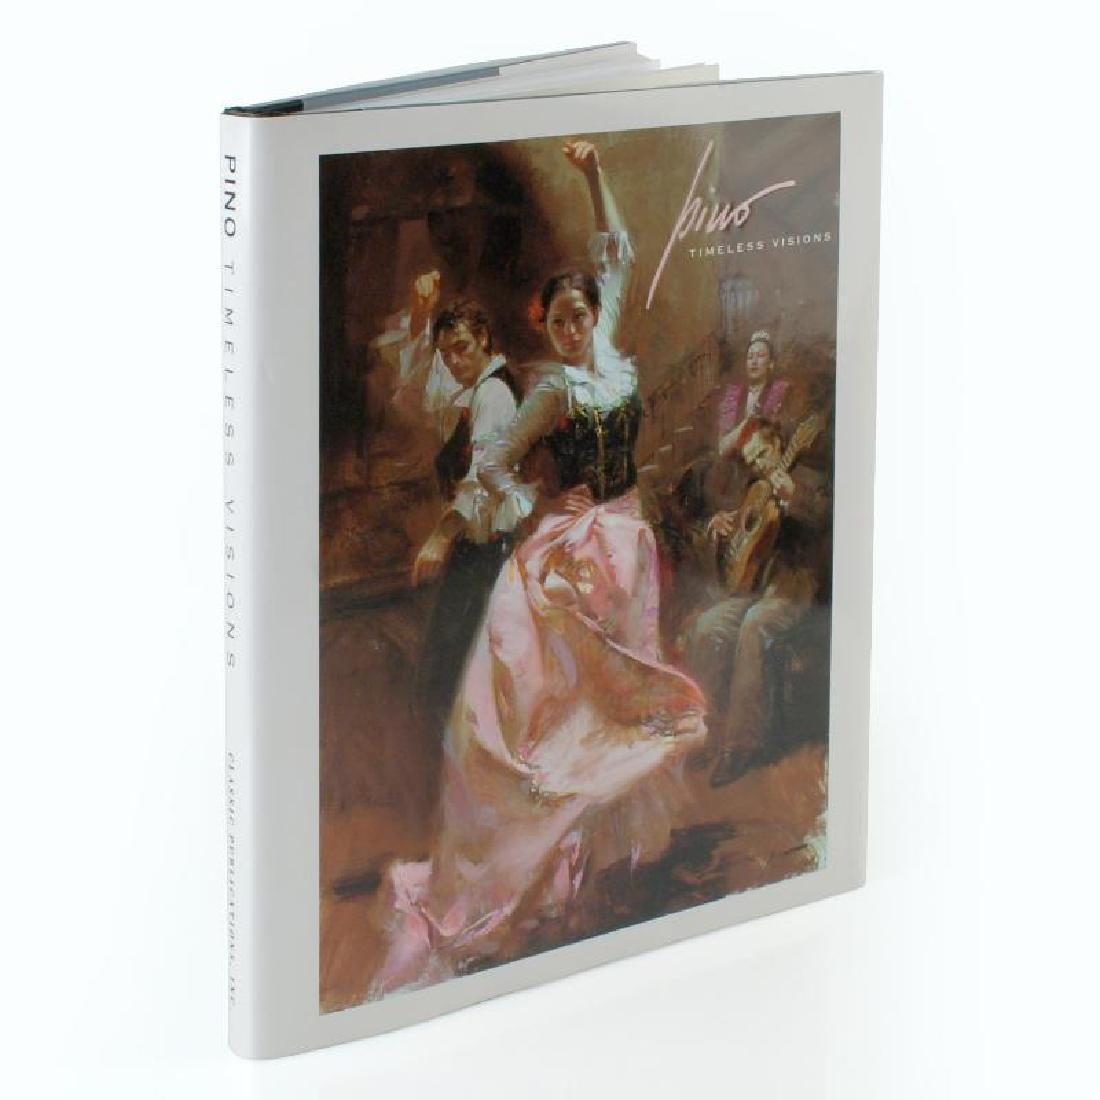 """Pino: Timeless Visions""(2007) Fine Art Book with Text - 3"